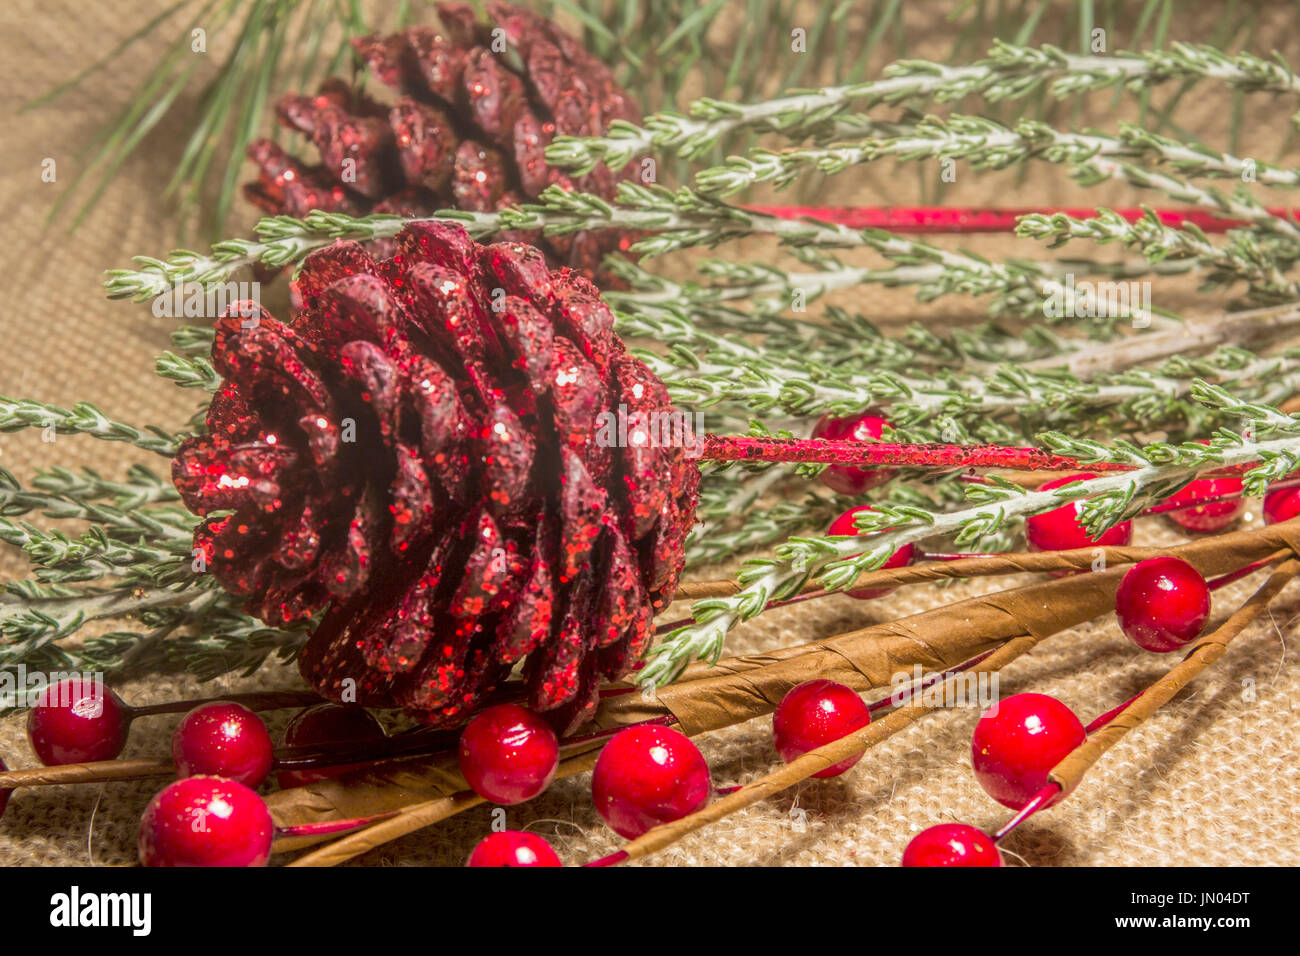 Christmas Decorations with Pine Cones and Berries - Stock Image